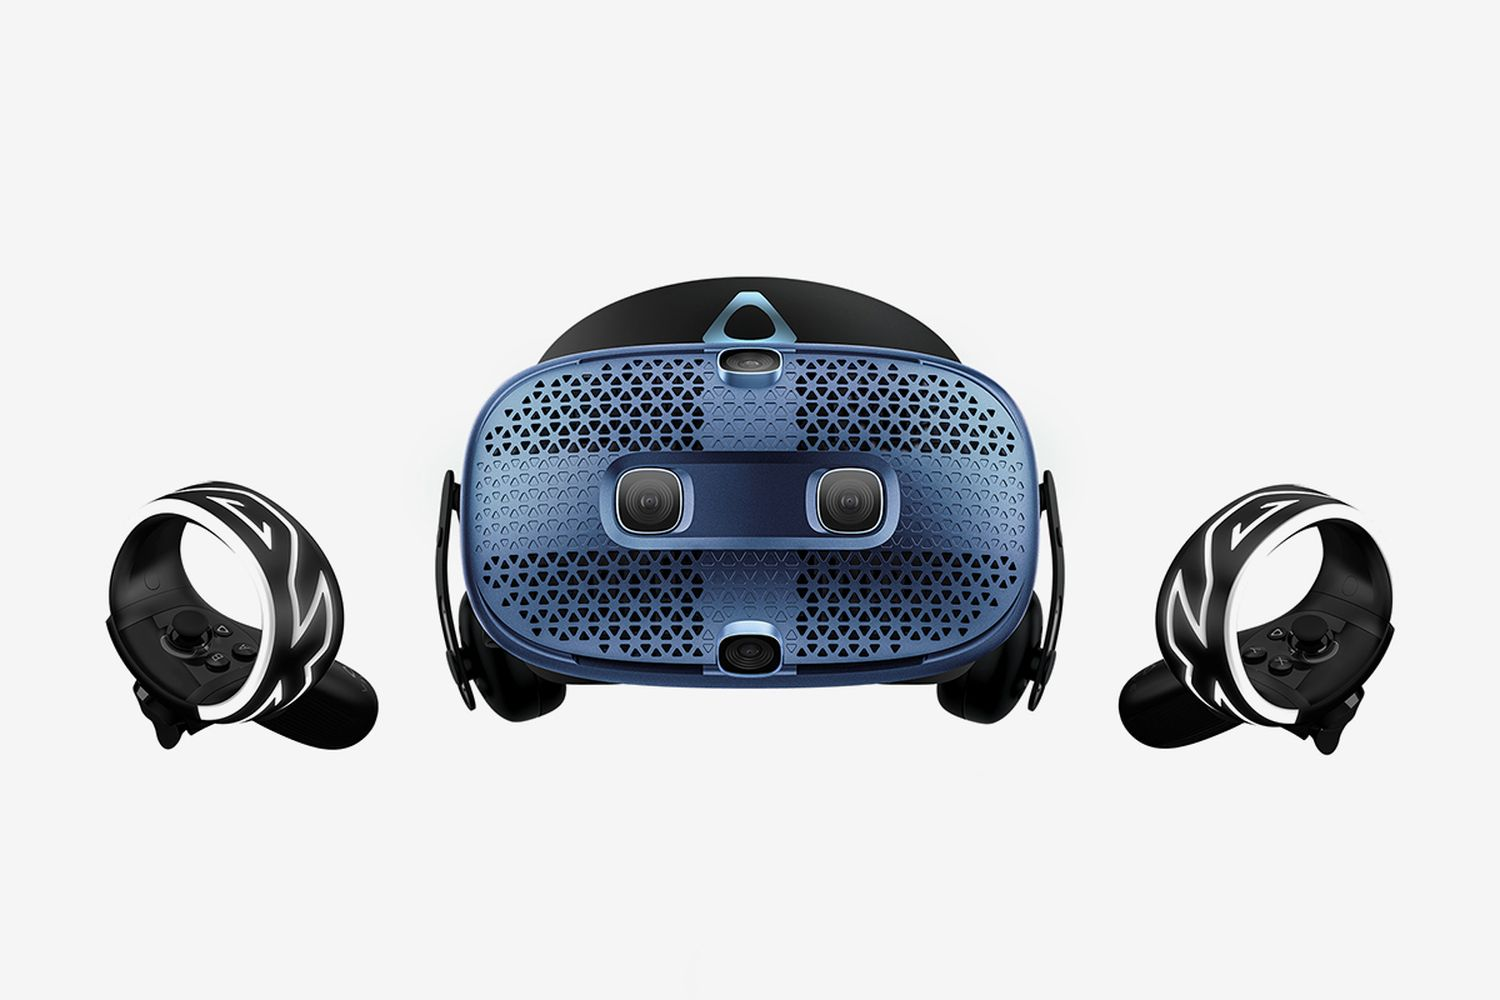 VIVE Cosmos VR Headset & System